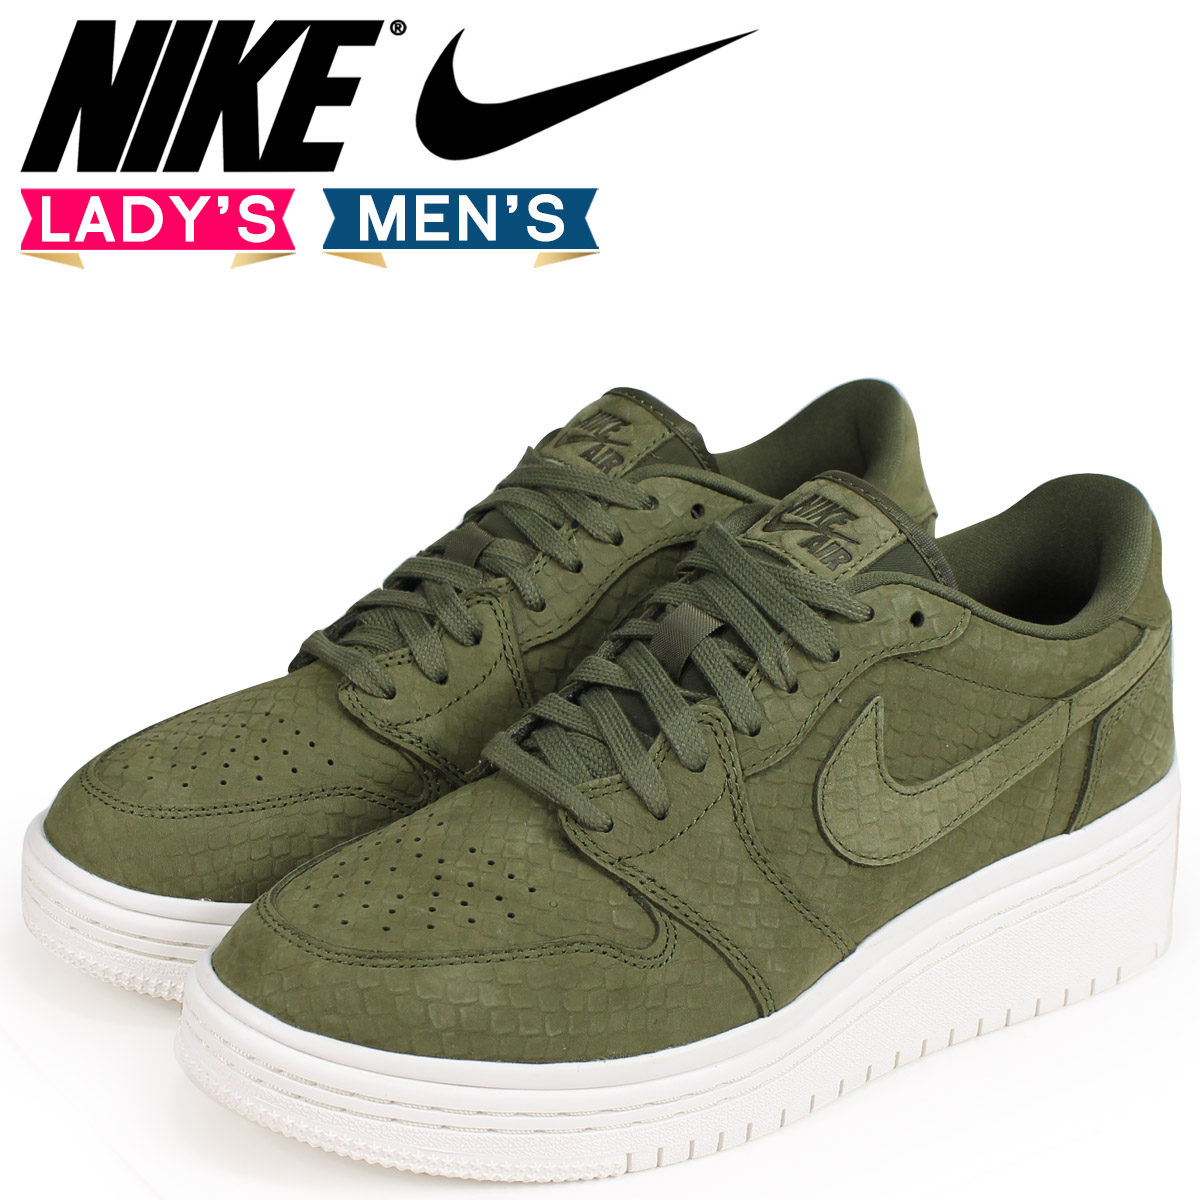 8ade0727335c11 NIKE Nike Air Jordan 1 nostalgic lady s men sneakers WMNS AIR JORDAN 1 RETRO  LOW LIFTED AO1334-300 olive  load planned Shinnyu load in reservation  product ...